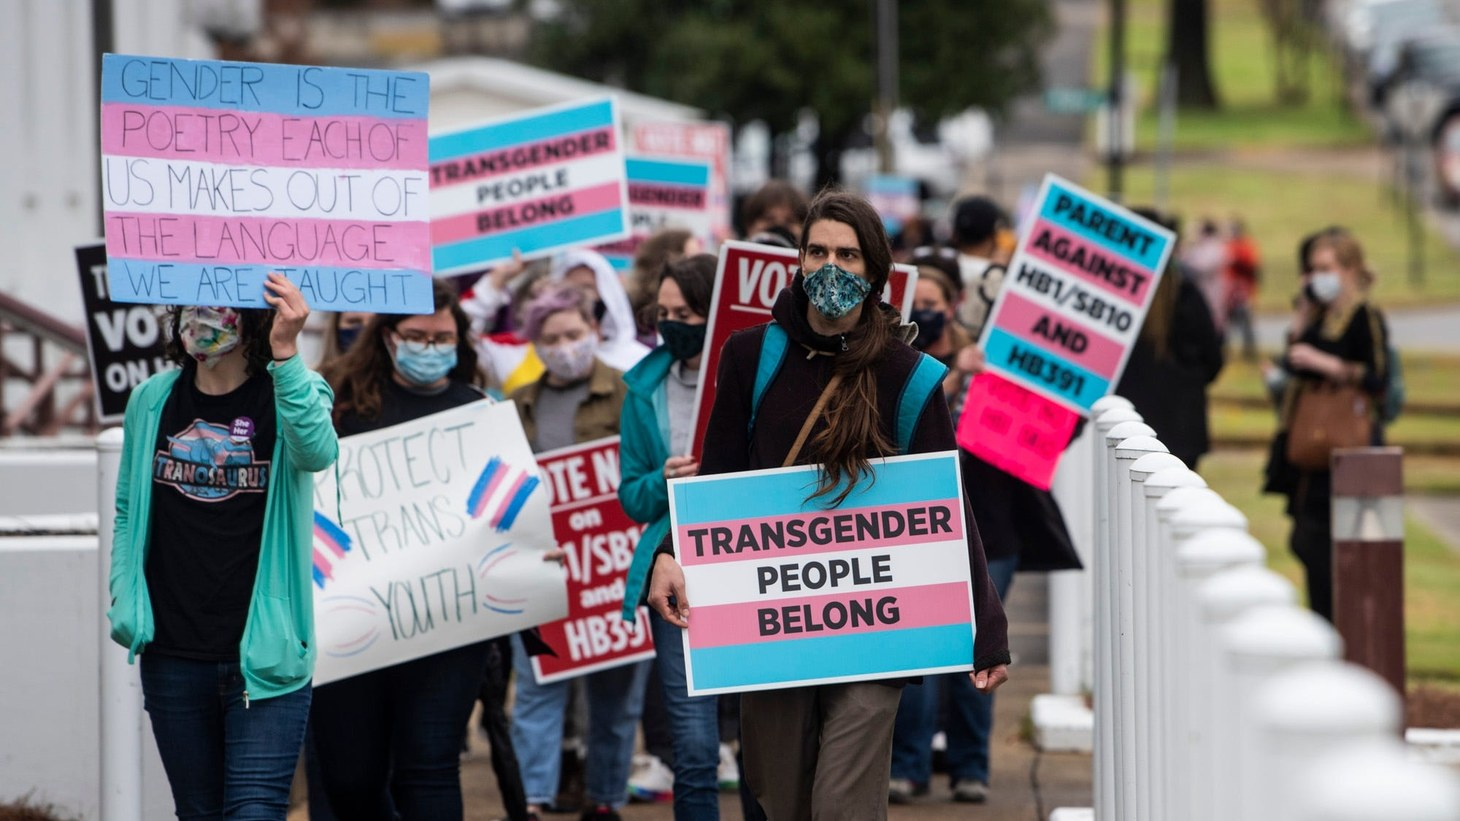 Protestors in support of transgender rights march around the Alabama State House in Montgomery, Ala., on Tuesday, March 2, 2021.